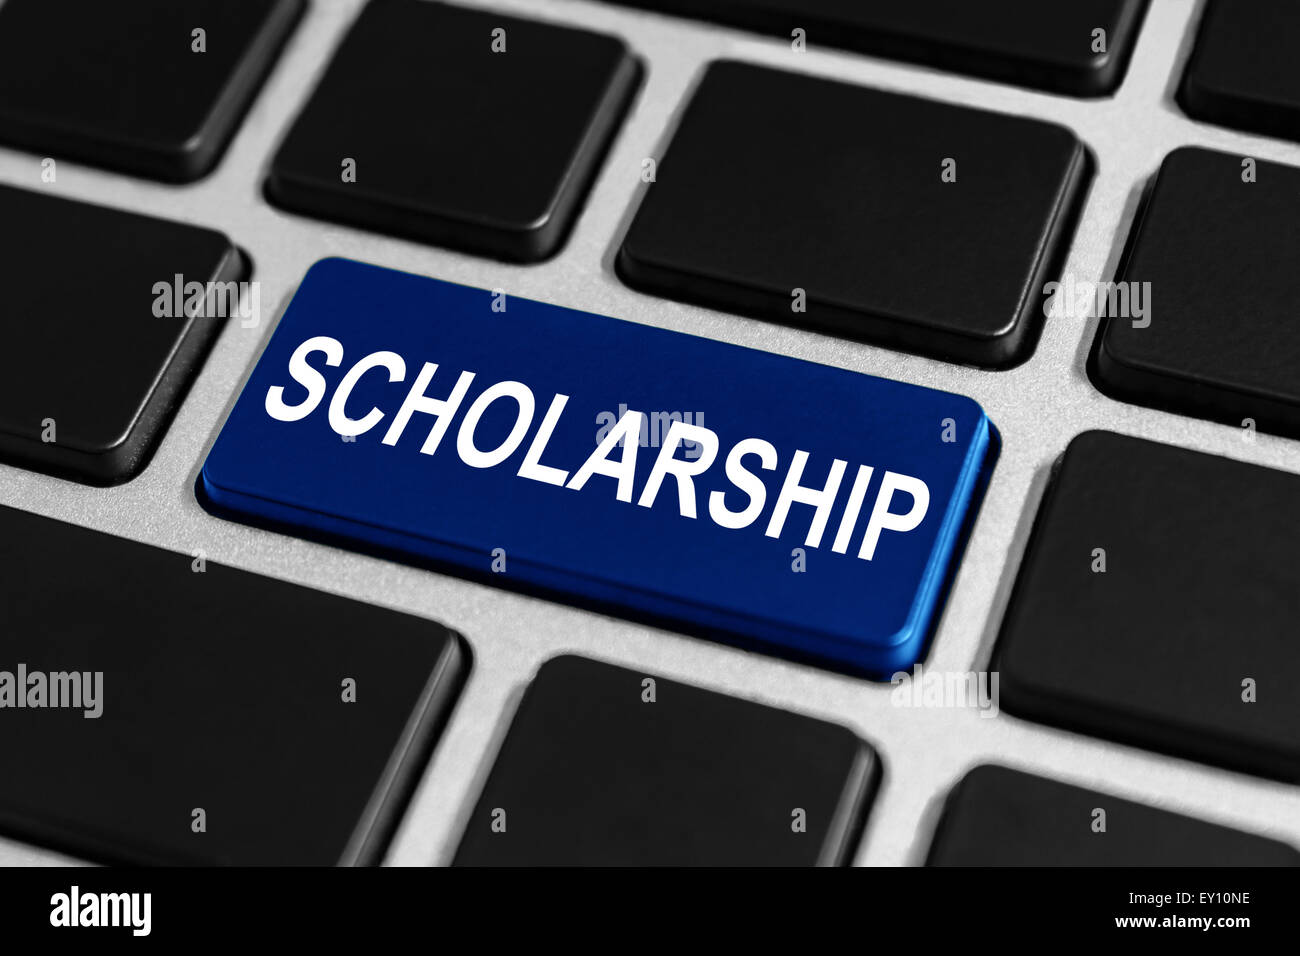 scholarship button on keyboard, education concept - Stock Image